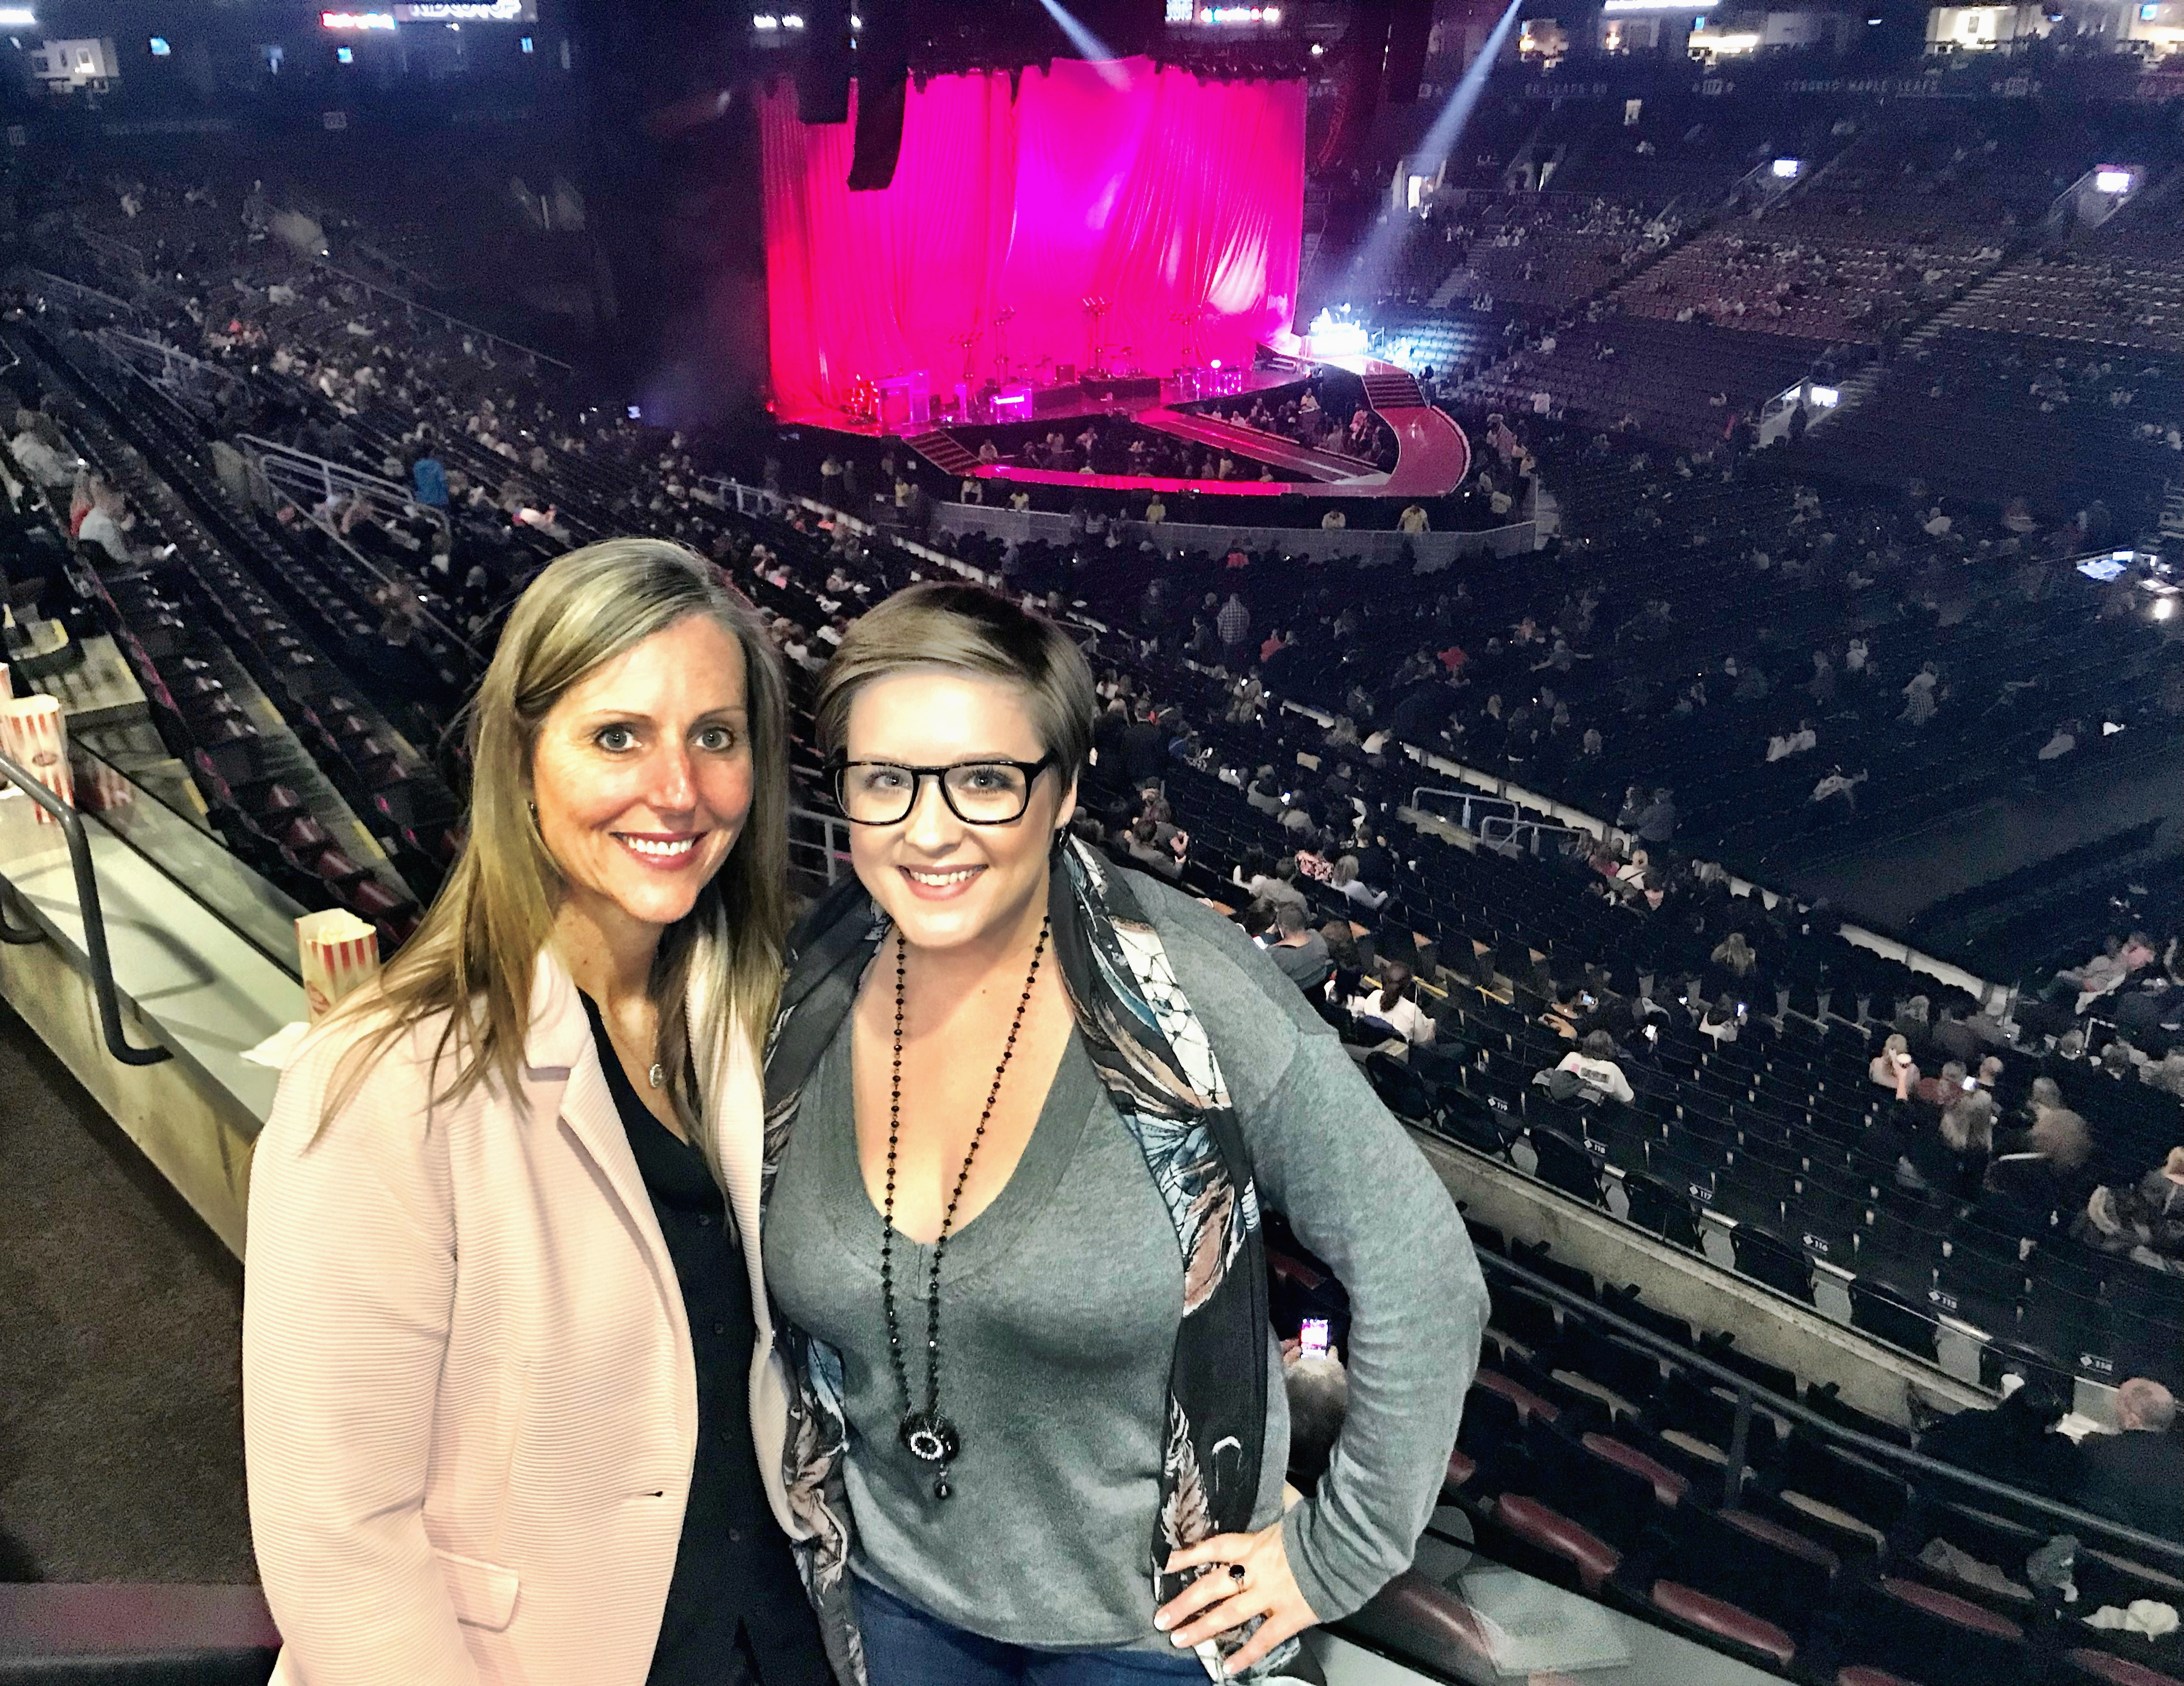 Experience Kissimmee raises a glass with travel pros at Pink concert